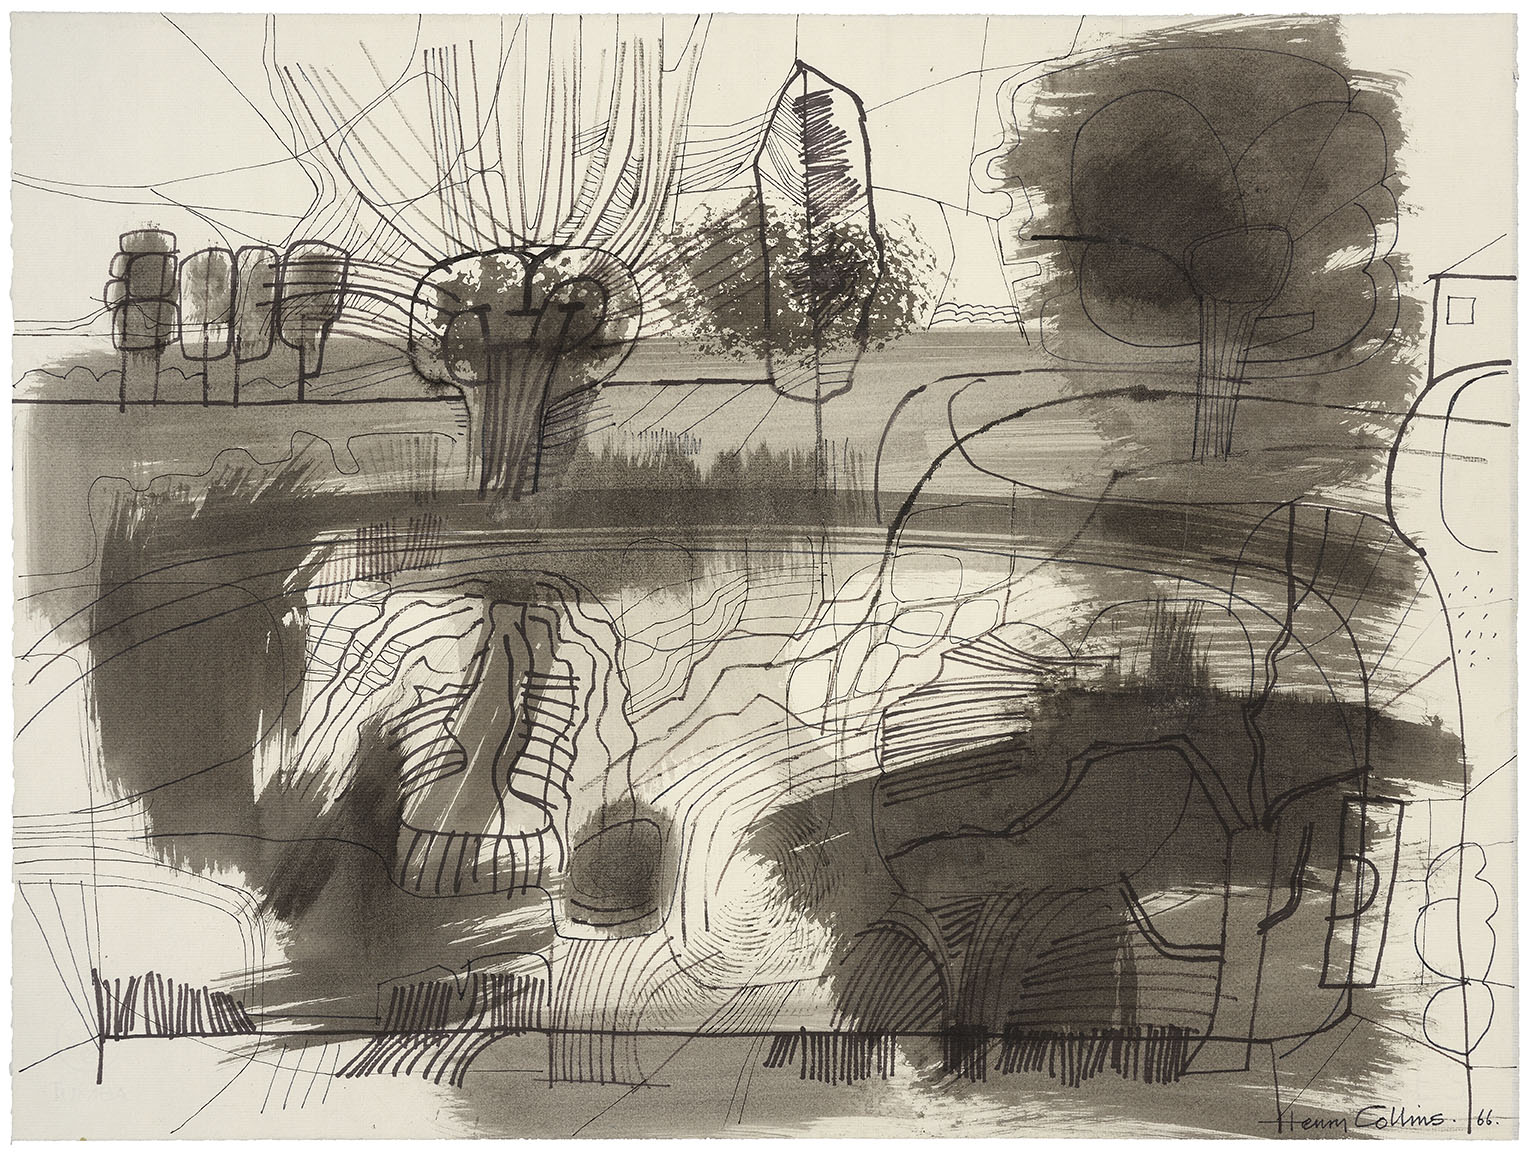 Henry Collins (1910-1994)    The Pond at Lexden,  1966, Pen, ink and wash on paper, 18 ¾ x 25 in, Signed and dated  [CAS 56]